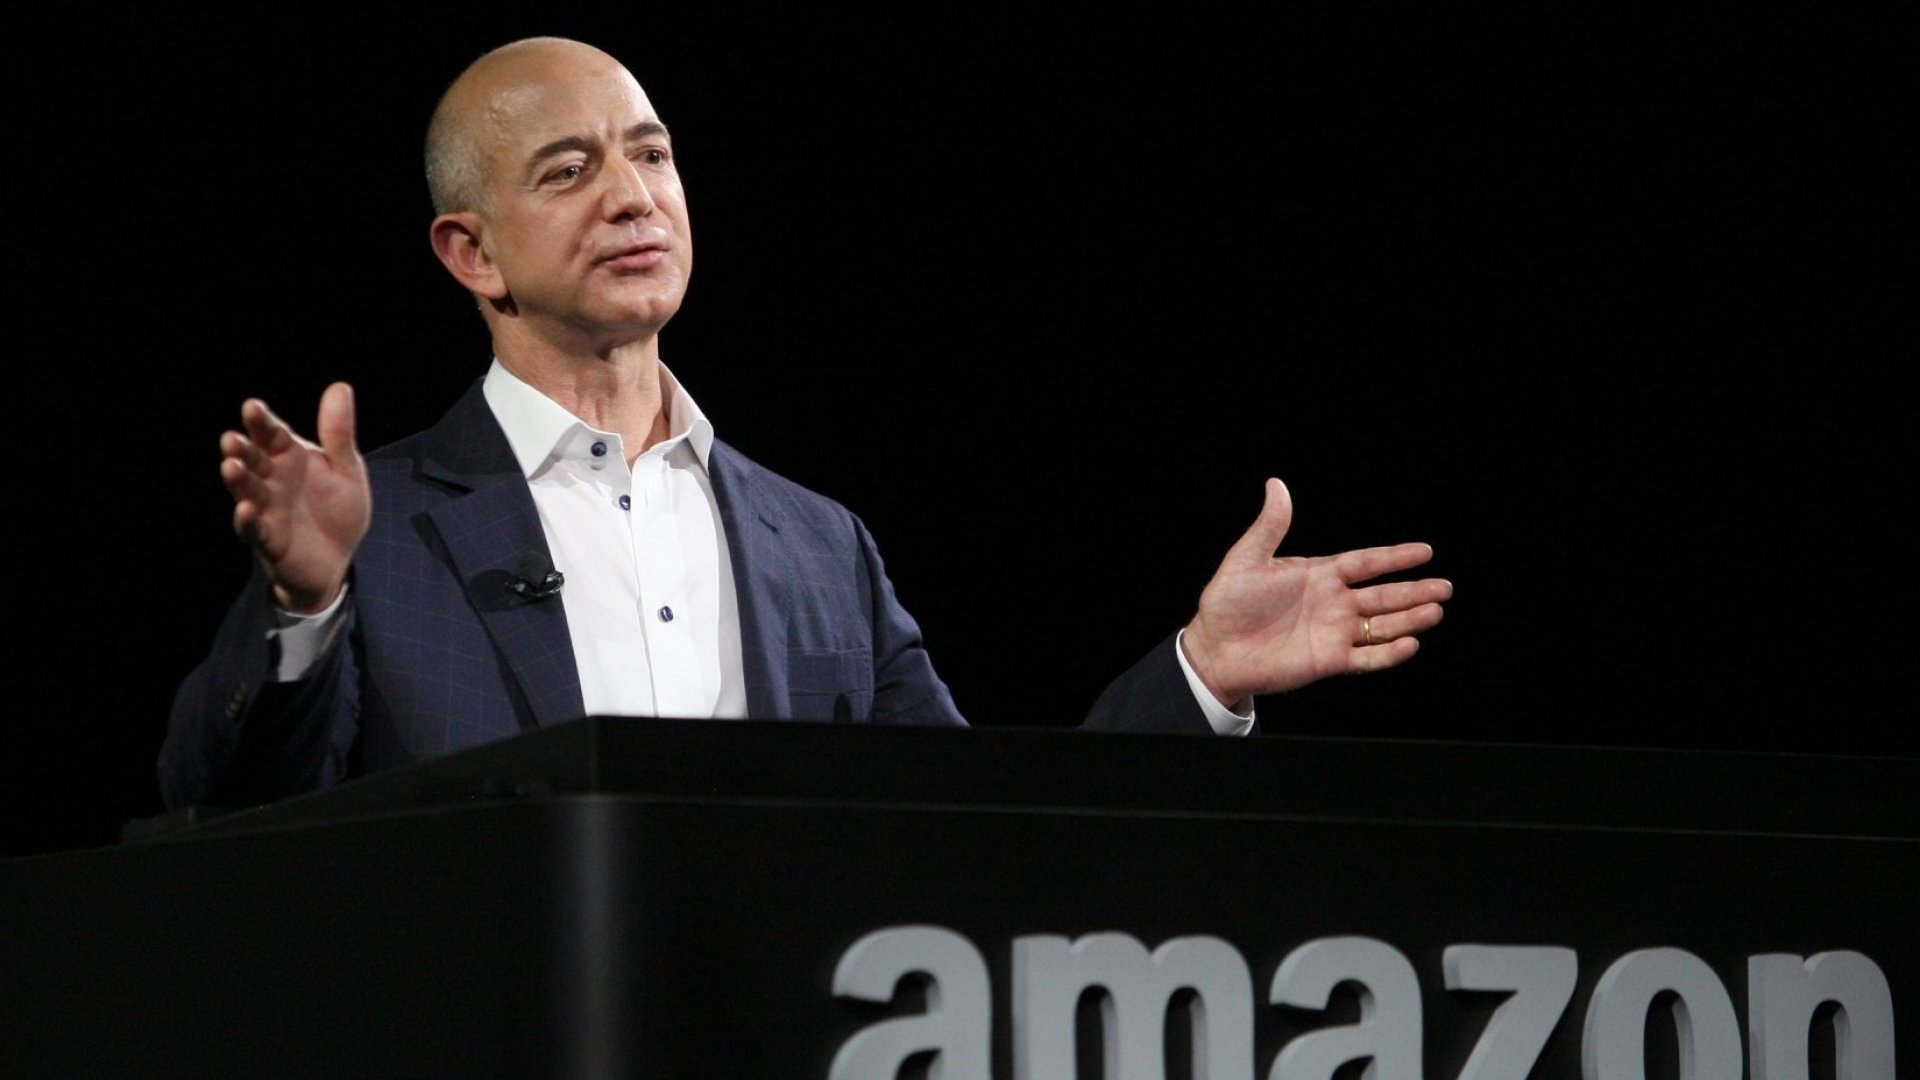 I Worked With Jeff Bezos, and These Are the Traits That Helped Make Him the World's Richest Man